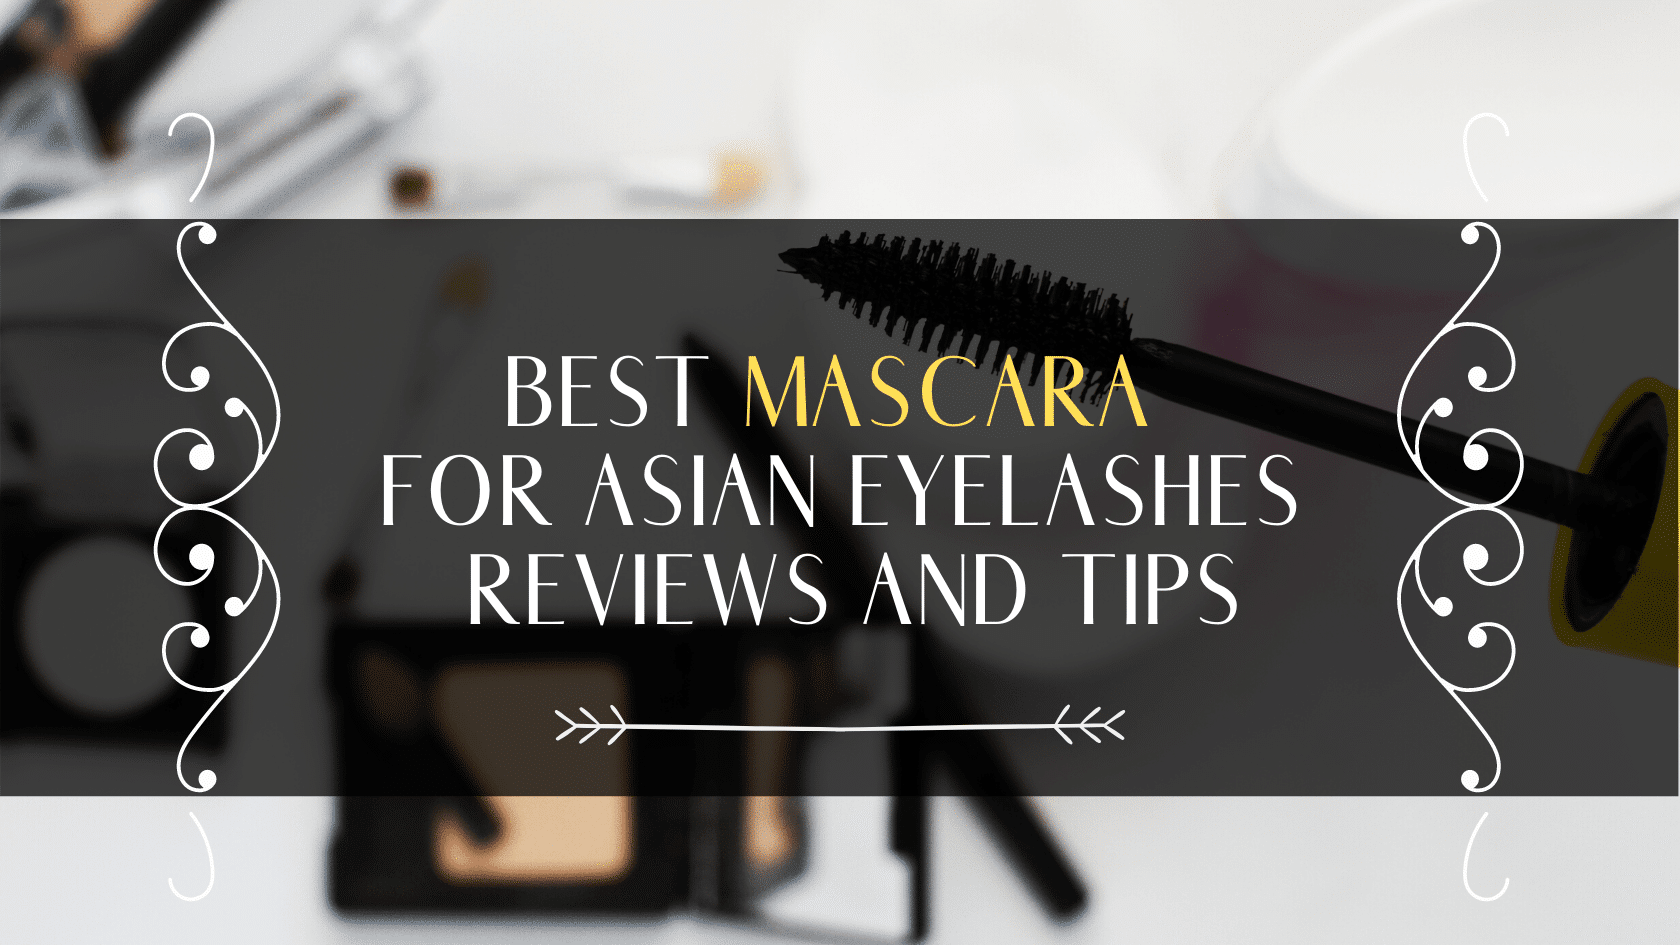 Best Mascara For Asian Eyelashes 2020 – Reviews And Tips